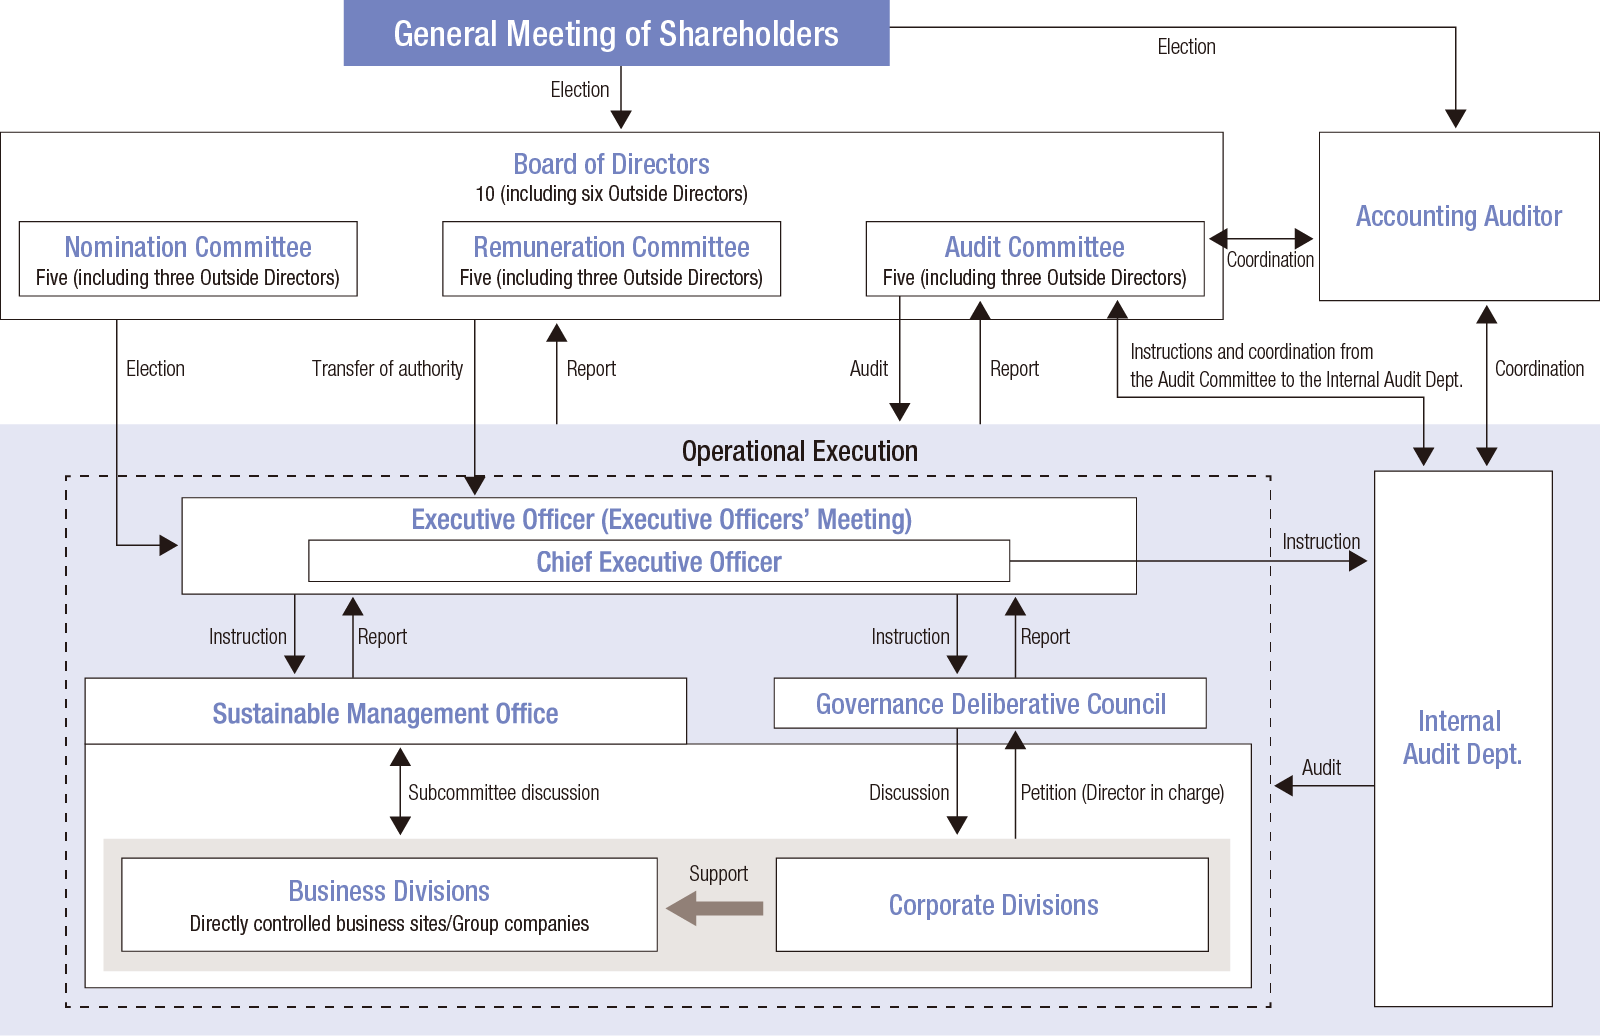 Overview of Corporate Governance System